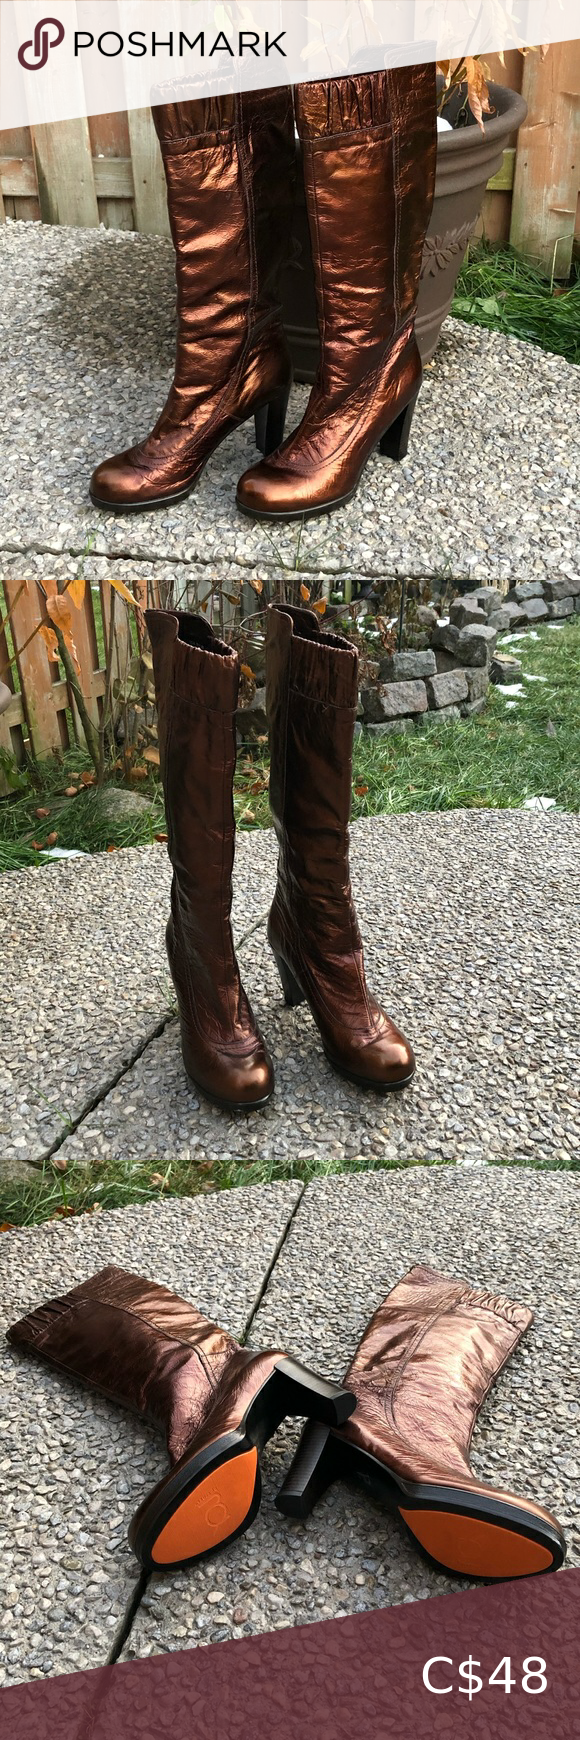 Leather boots, Shoes heels vintage